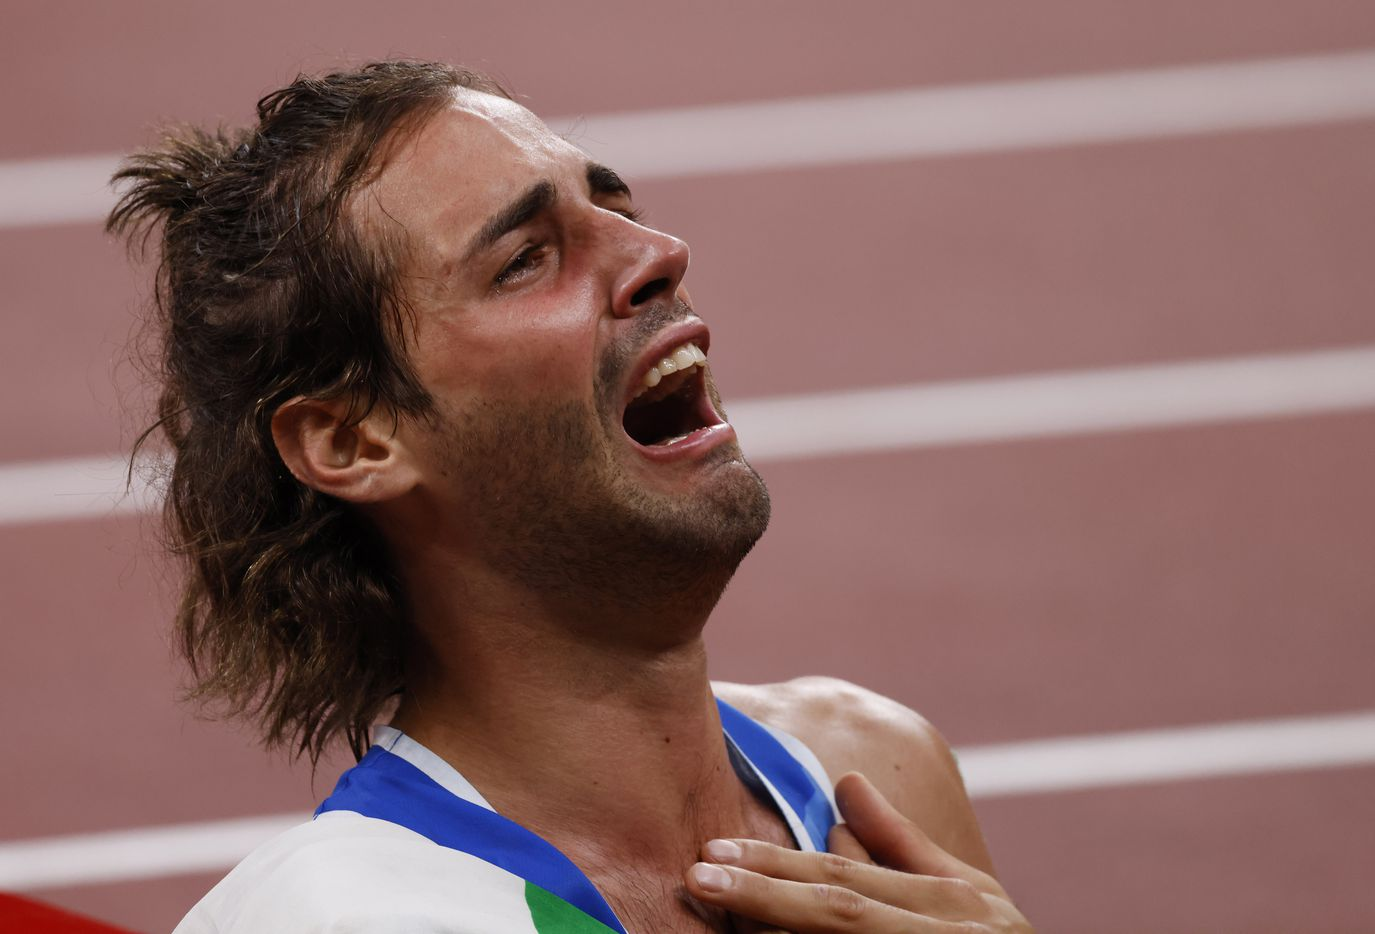 Italy's Gianmarco Tamberi gets emotional after winning a gold medal in the men's high jump final during the postponed 2020 Tokyo Olympics at Olympic Stadium, on Sunday, August 1, 2021, in Tokyo, Japan. Tamberi will share a gold medal with Qatar's Mutaz Essa Barshim who also cleared 2.37 meters in the final. (Vernon Bryant/The Dallas Morning News)